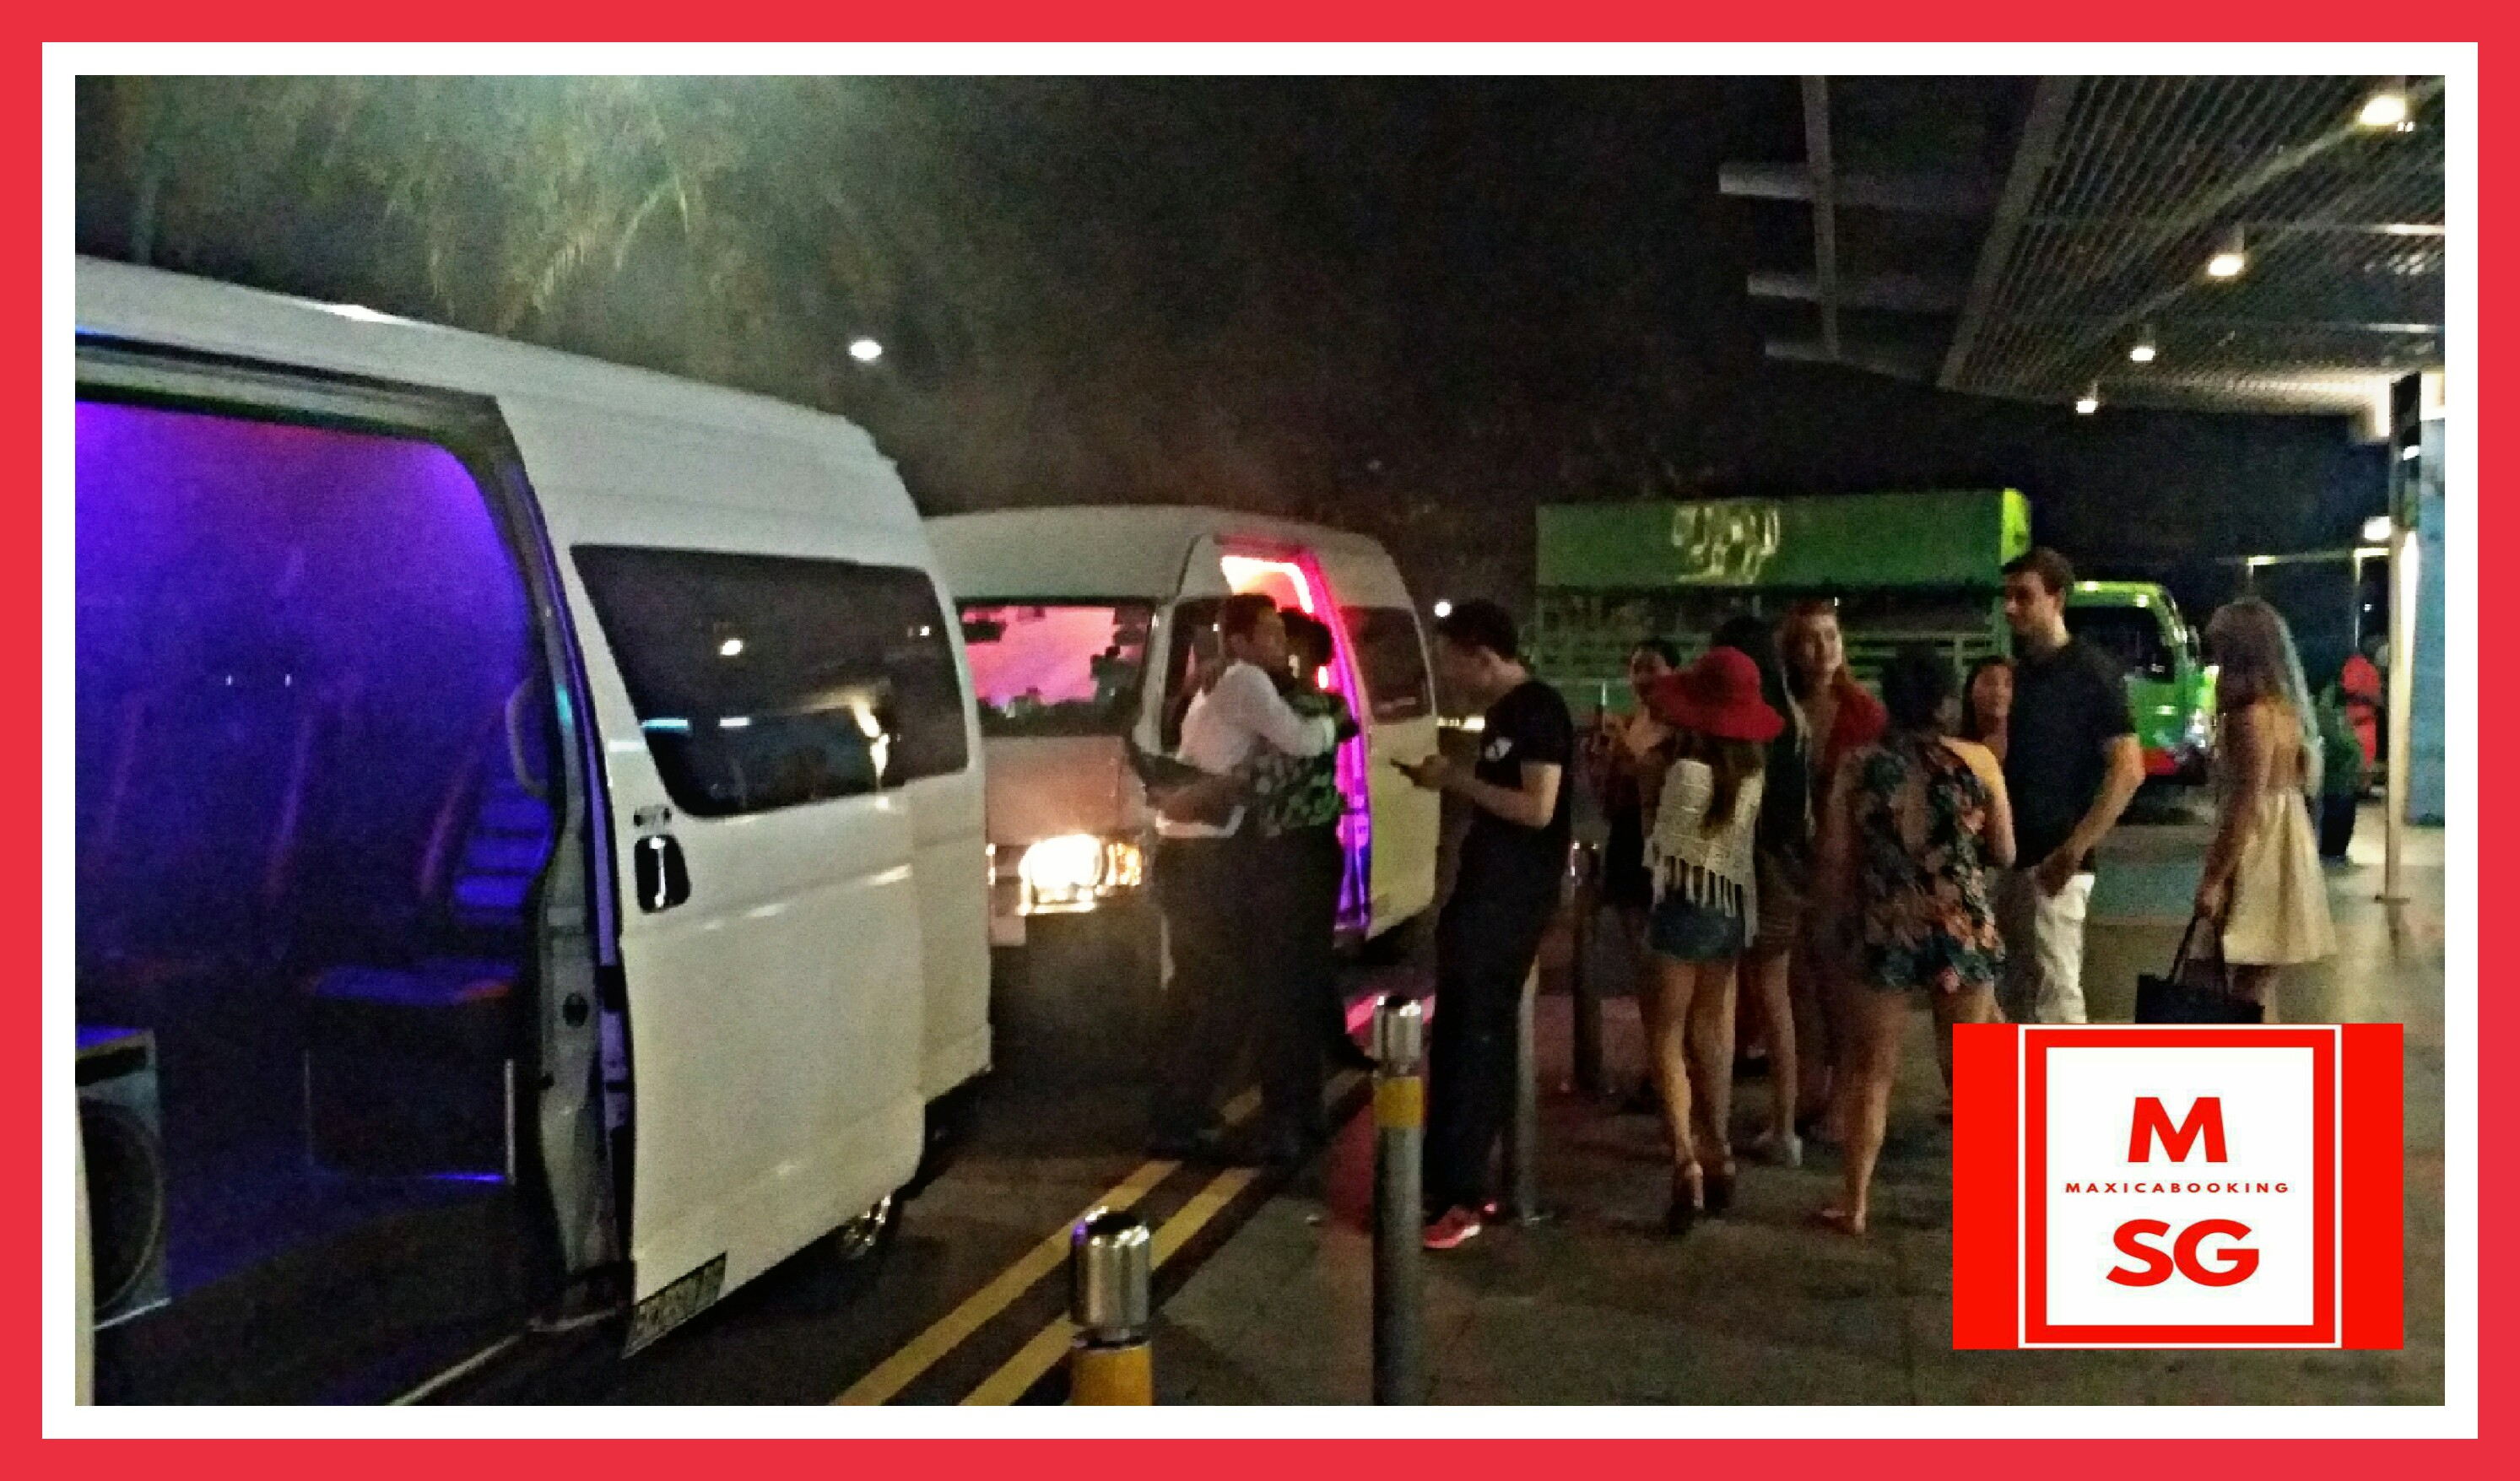 Book Party bus for city transfers